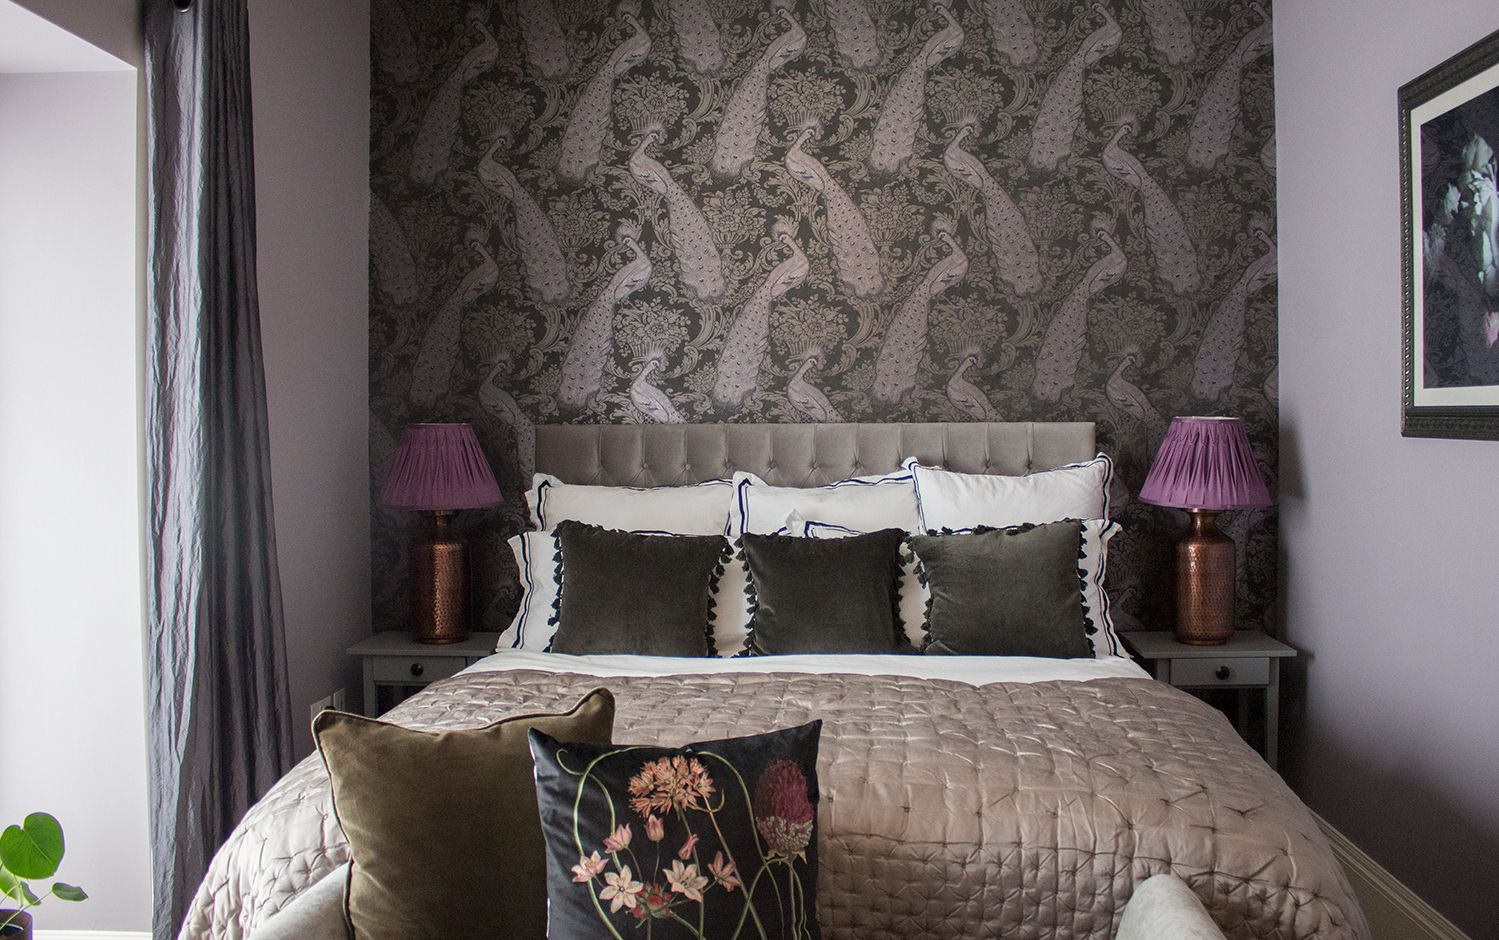 A photo of the bed with new headboard, statement wallpaper and luxury bedding.